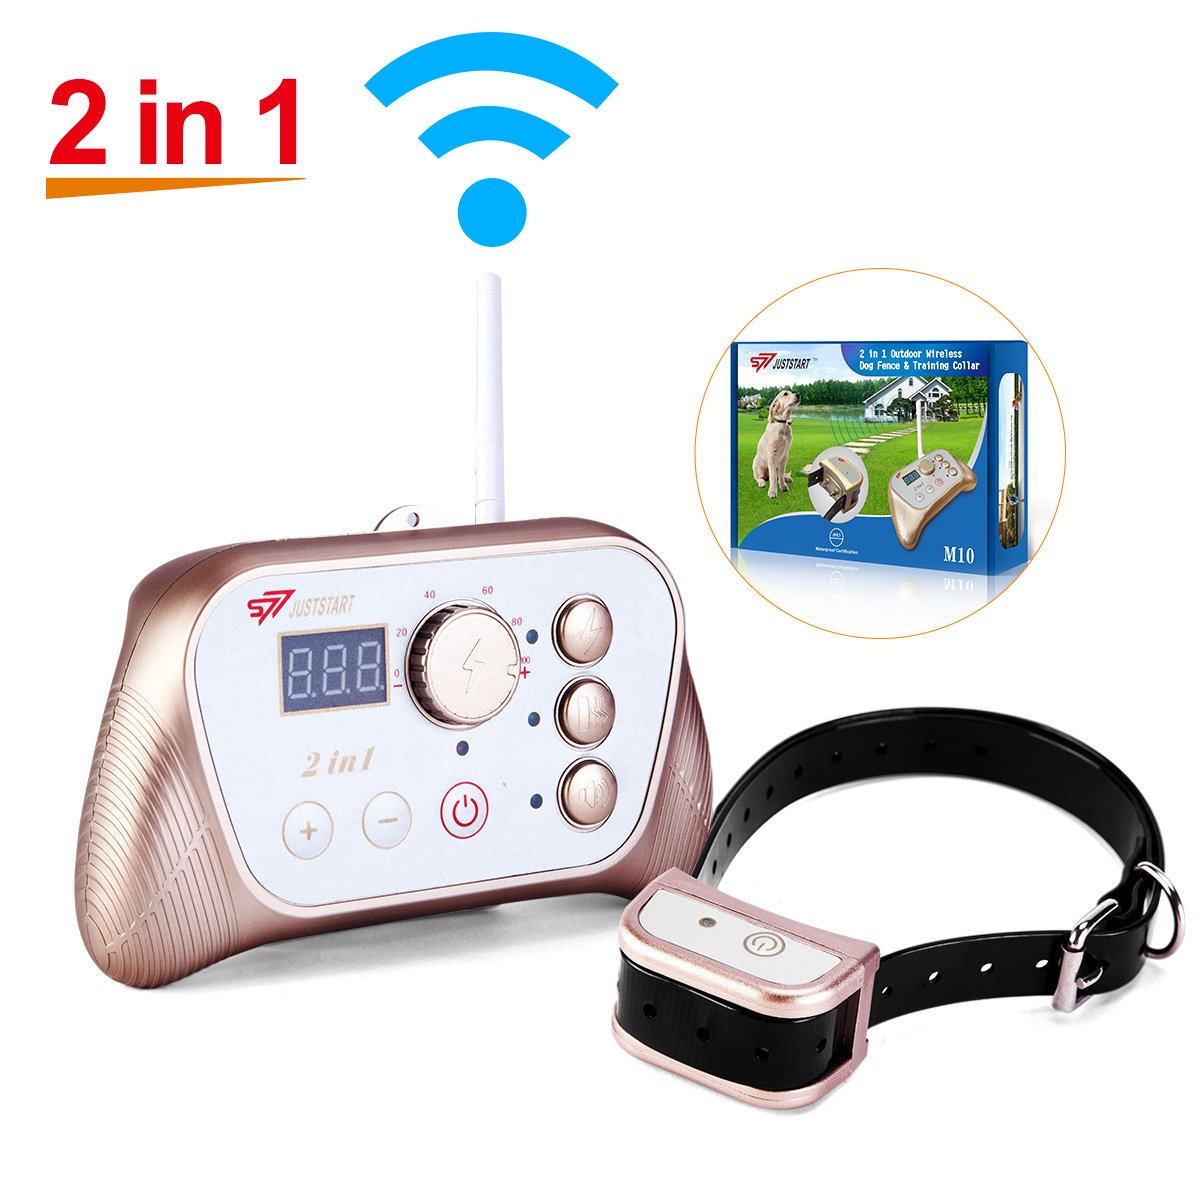 NEWEST 2-in-1 Stablest Signal Wireless Dog Fence System & Dog Training Collar,Invisible Pet Fence System Kit Static Shock & Vibration & Tone for Small to Large Stubborn & Energetic Dogs ,Waterproof